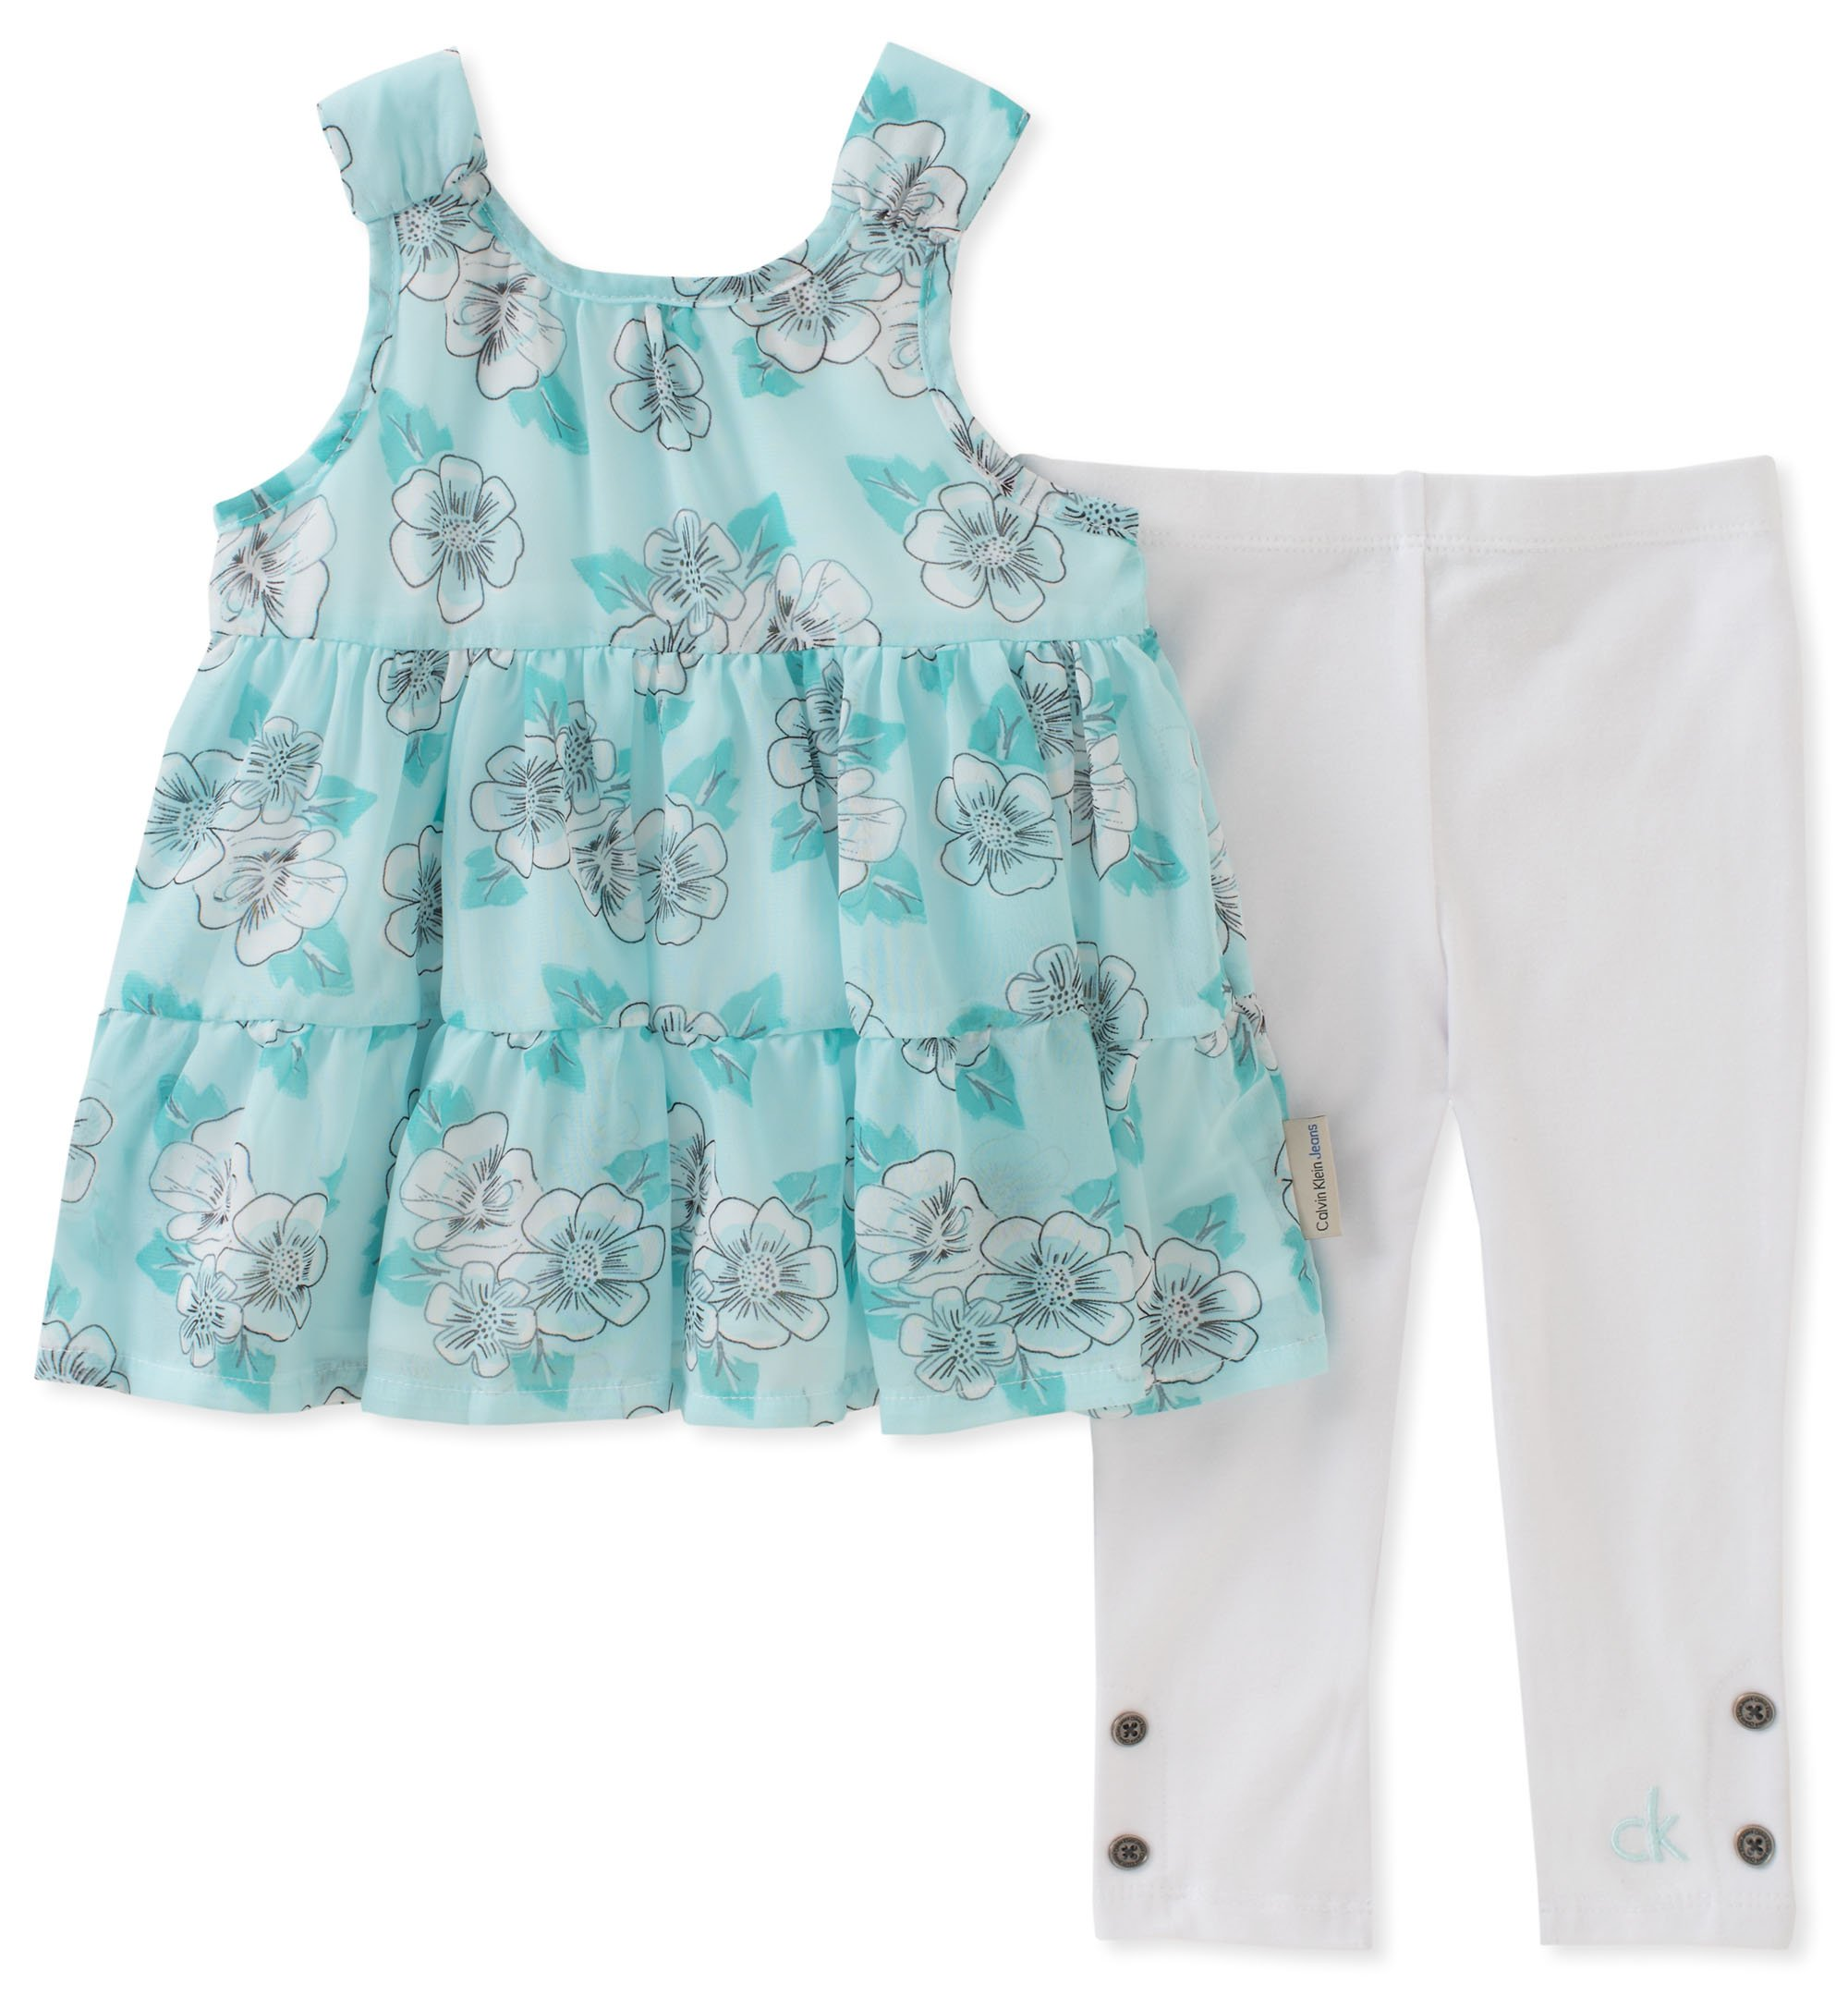 Calvin Klein Little Girl's Tunic Set Pants, canal blue/white, 6